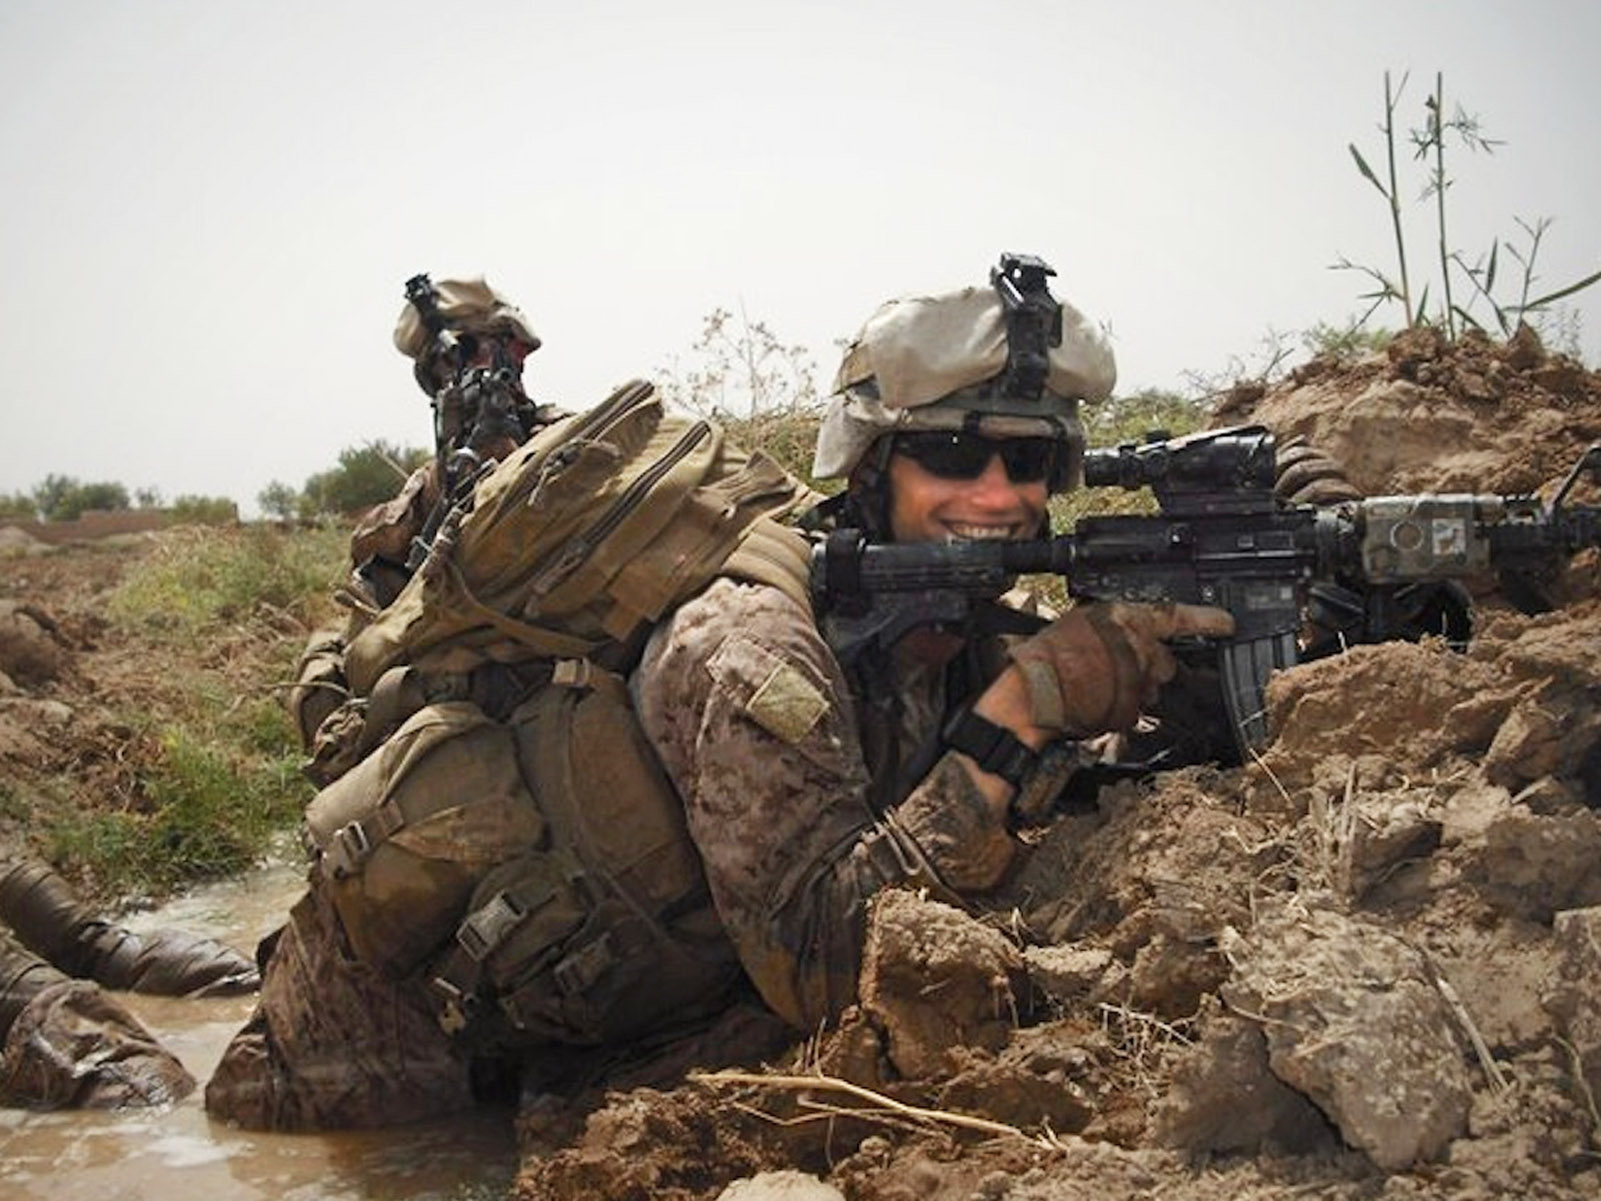 U.S. Marine Corps First Lieutenant James R. Zimmerman, 25, of Aroostook, Maine, assigned to 2nd Battalion, 6th Marine Regiment, 2nd Marine Division, II Marine Expeditionary Force, based in Camp Lejeune, North Carolina, died on November 2, 2010, while conducting combat operations in Helmand province, Afghanistan. He is survived by his wife Lynel Winters, parents Tom and Jane, sister Megan, and brother Christian.